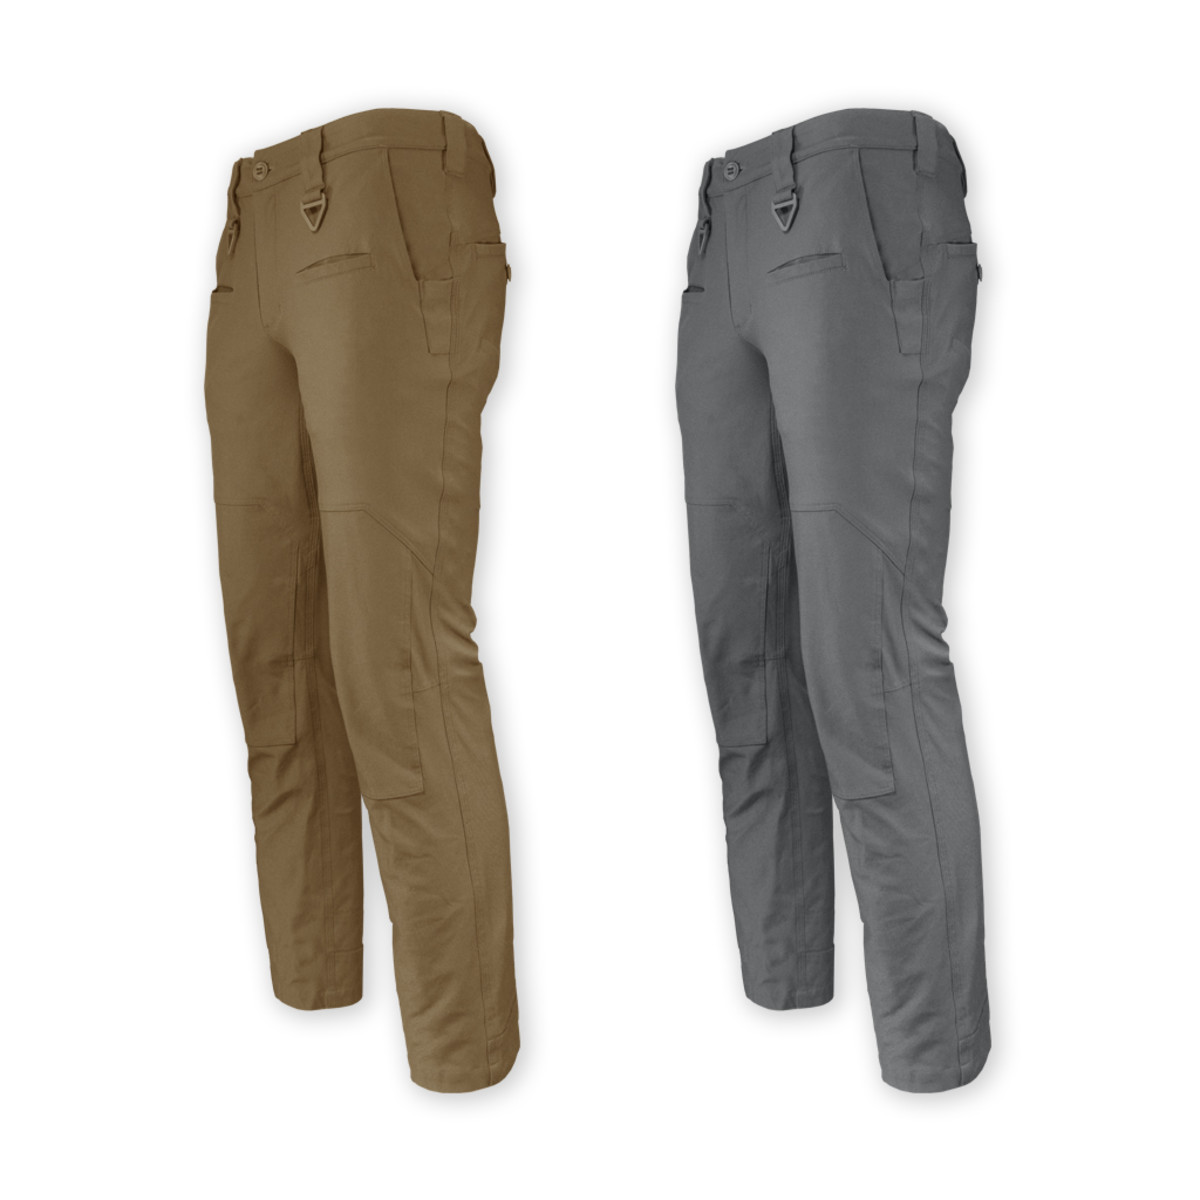 Prometheus Design Werx EDC Guide Cloth Pant